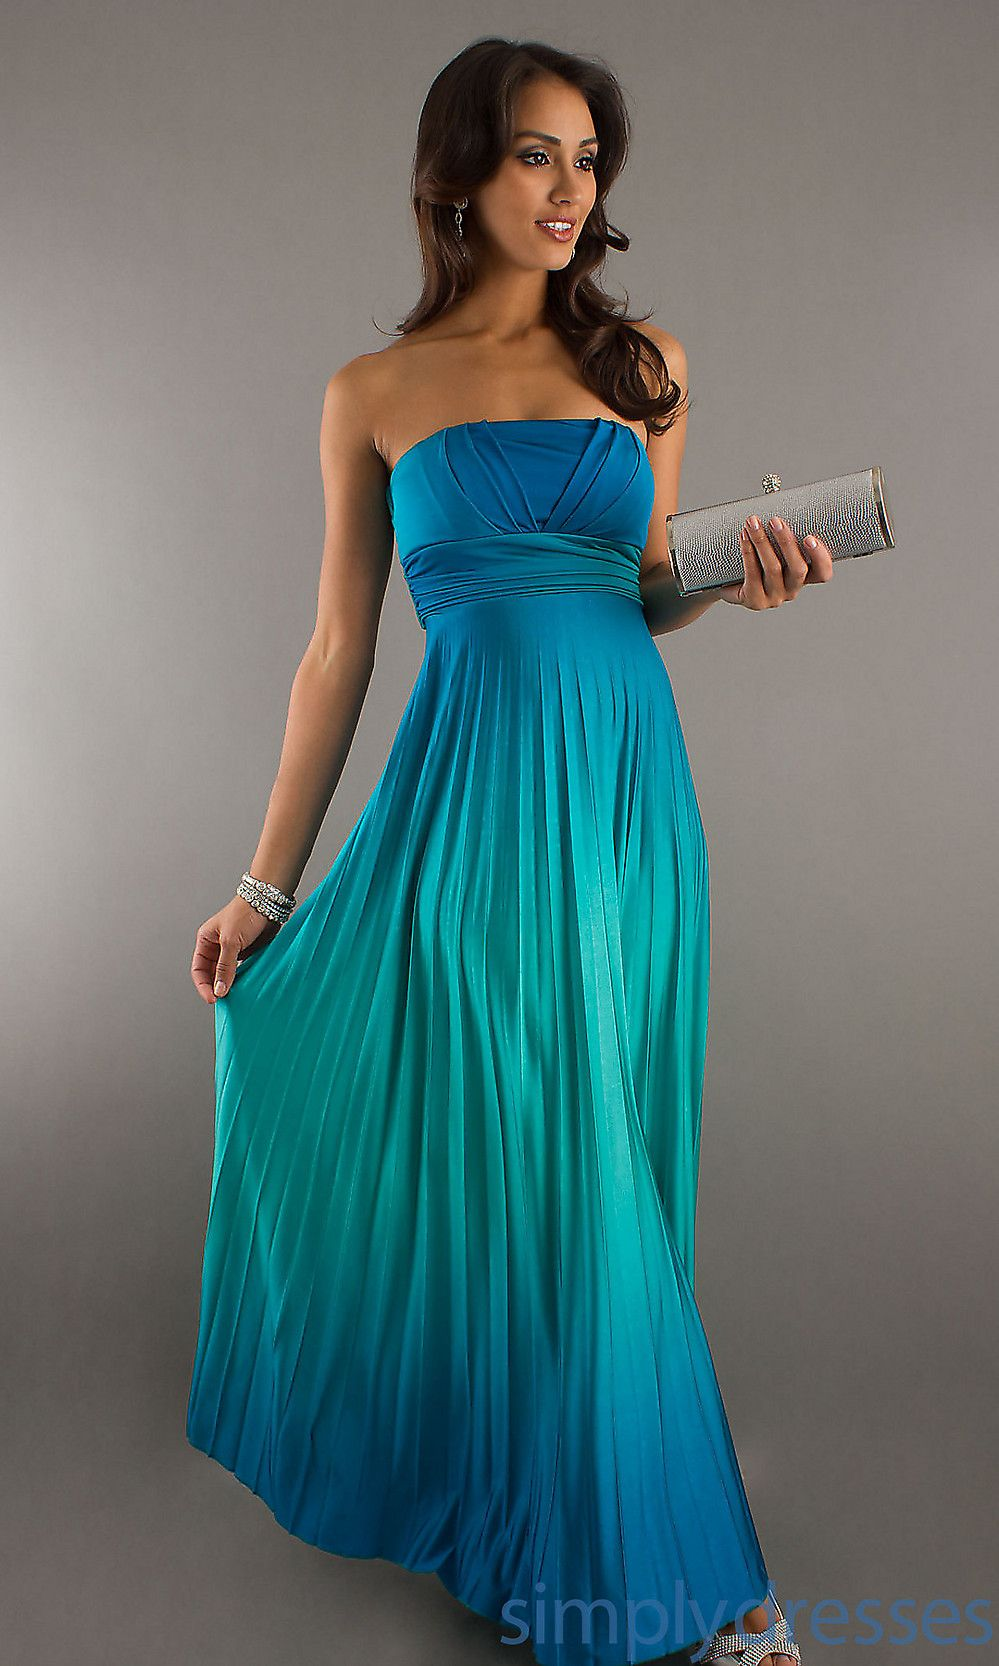 Ombre bridesmaids dress lovely fine pleated formal dress my